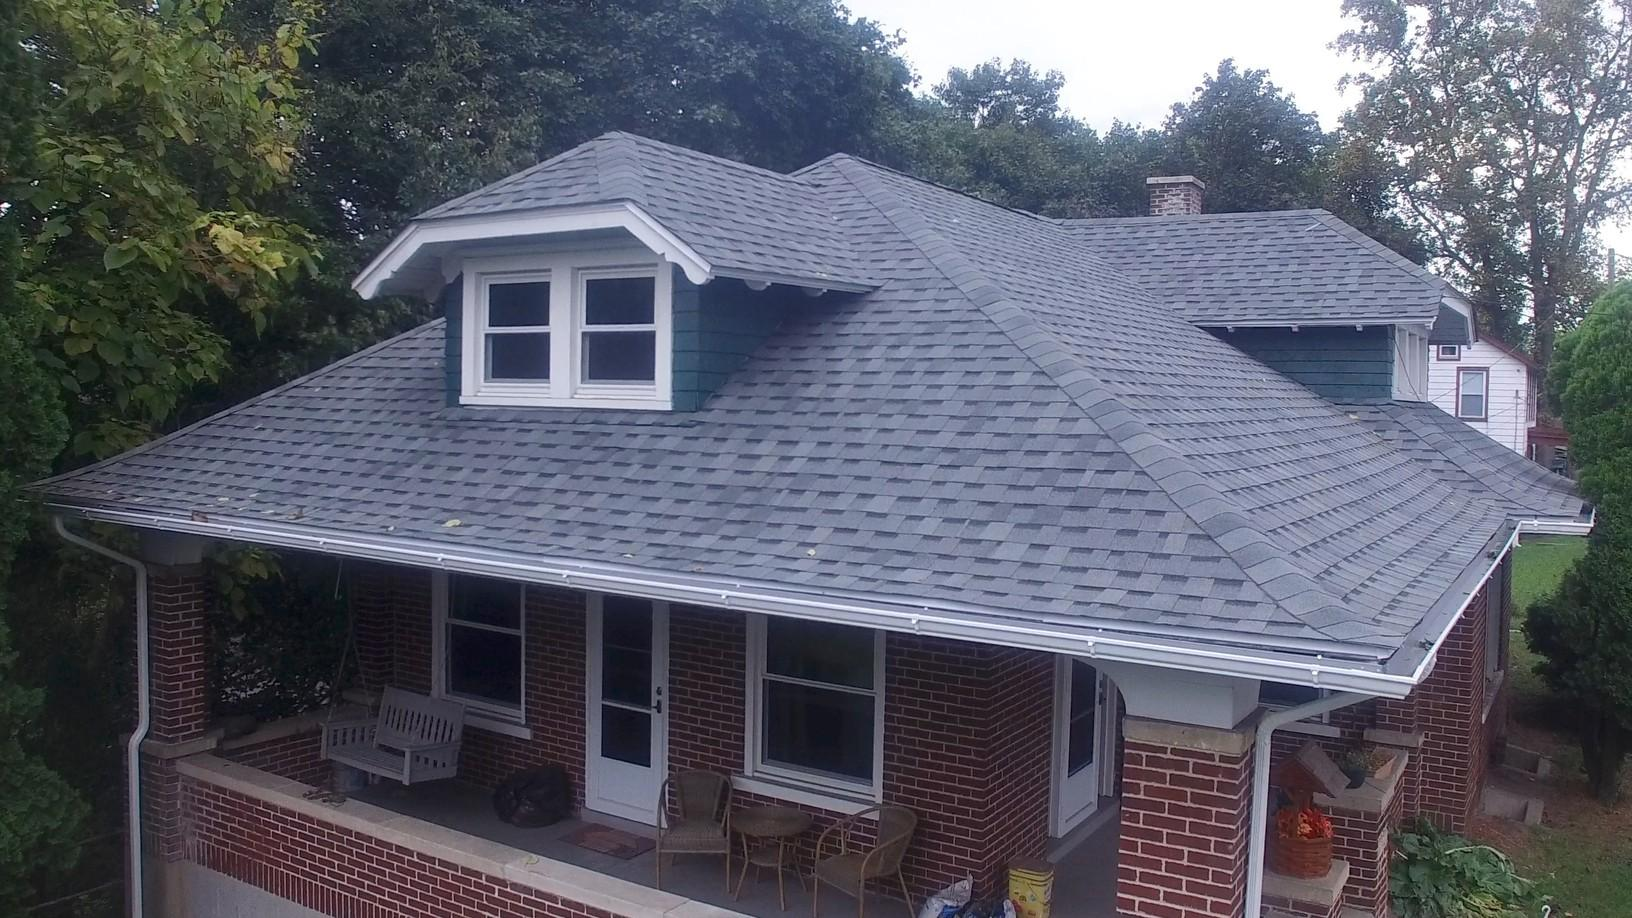 Brand New Home Lifetime Architectural Shingles and Gutters, Installed by Pinnacle Exteriors